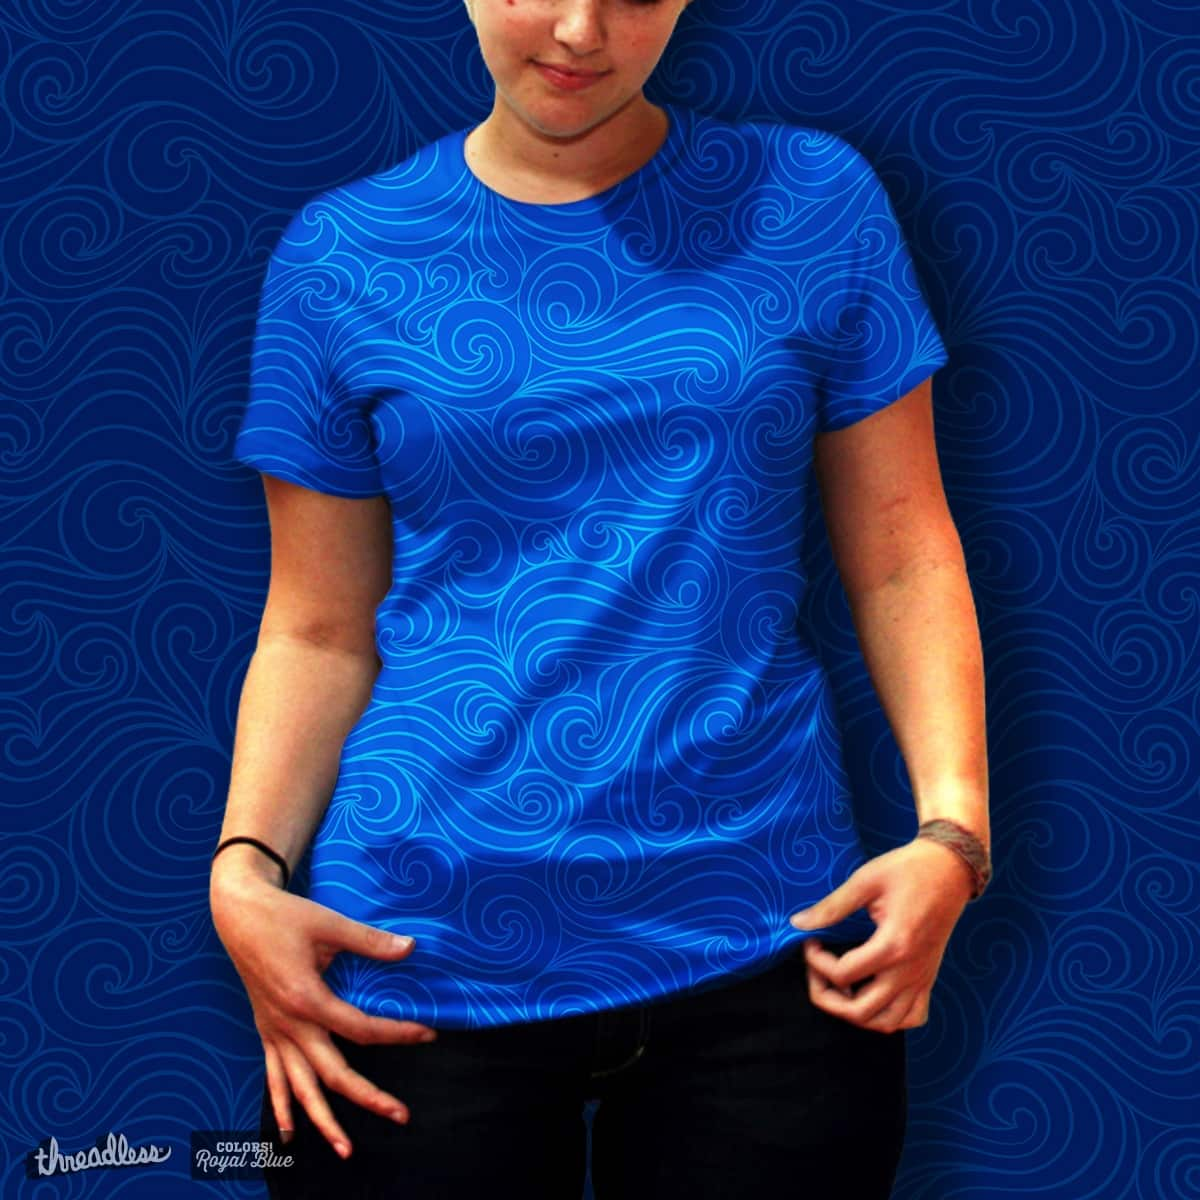 Ocean by OliOpi on Threadless